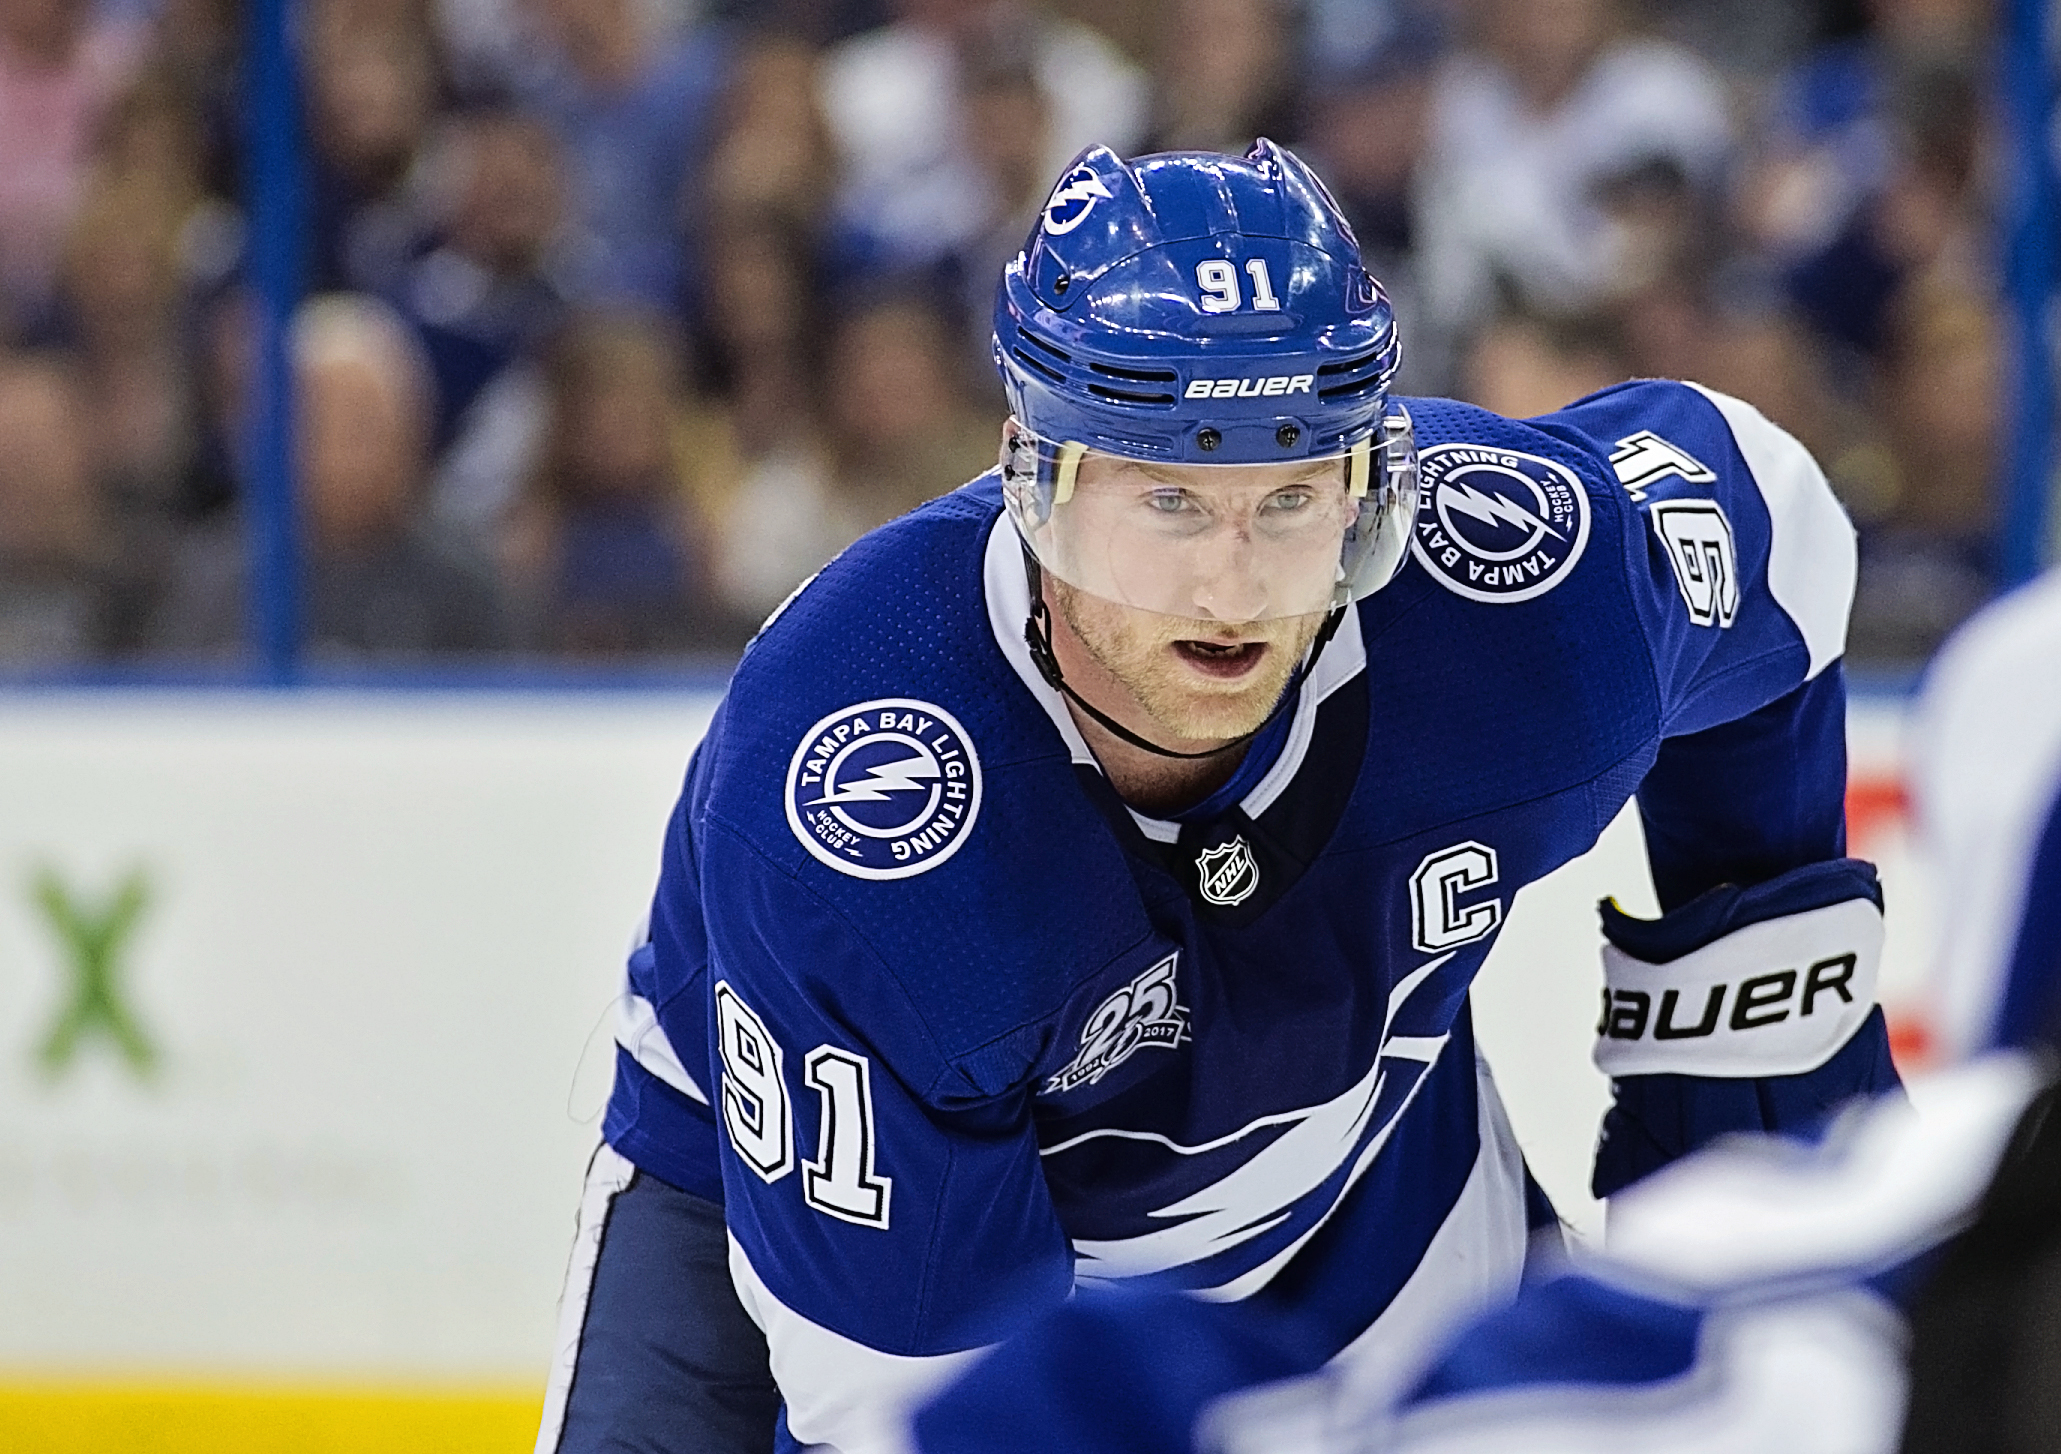 Stamkos scored his 25th goal./CARMEN MANDATO